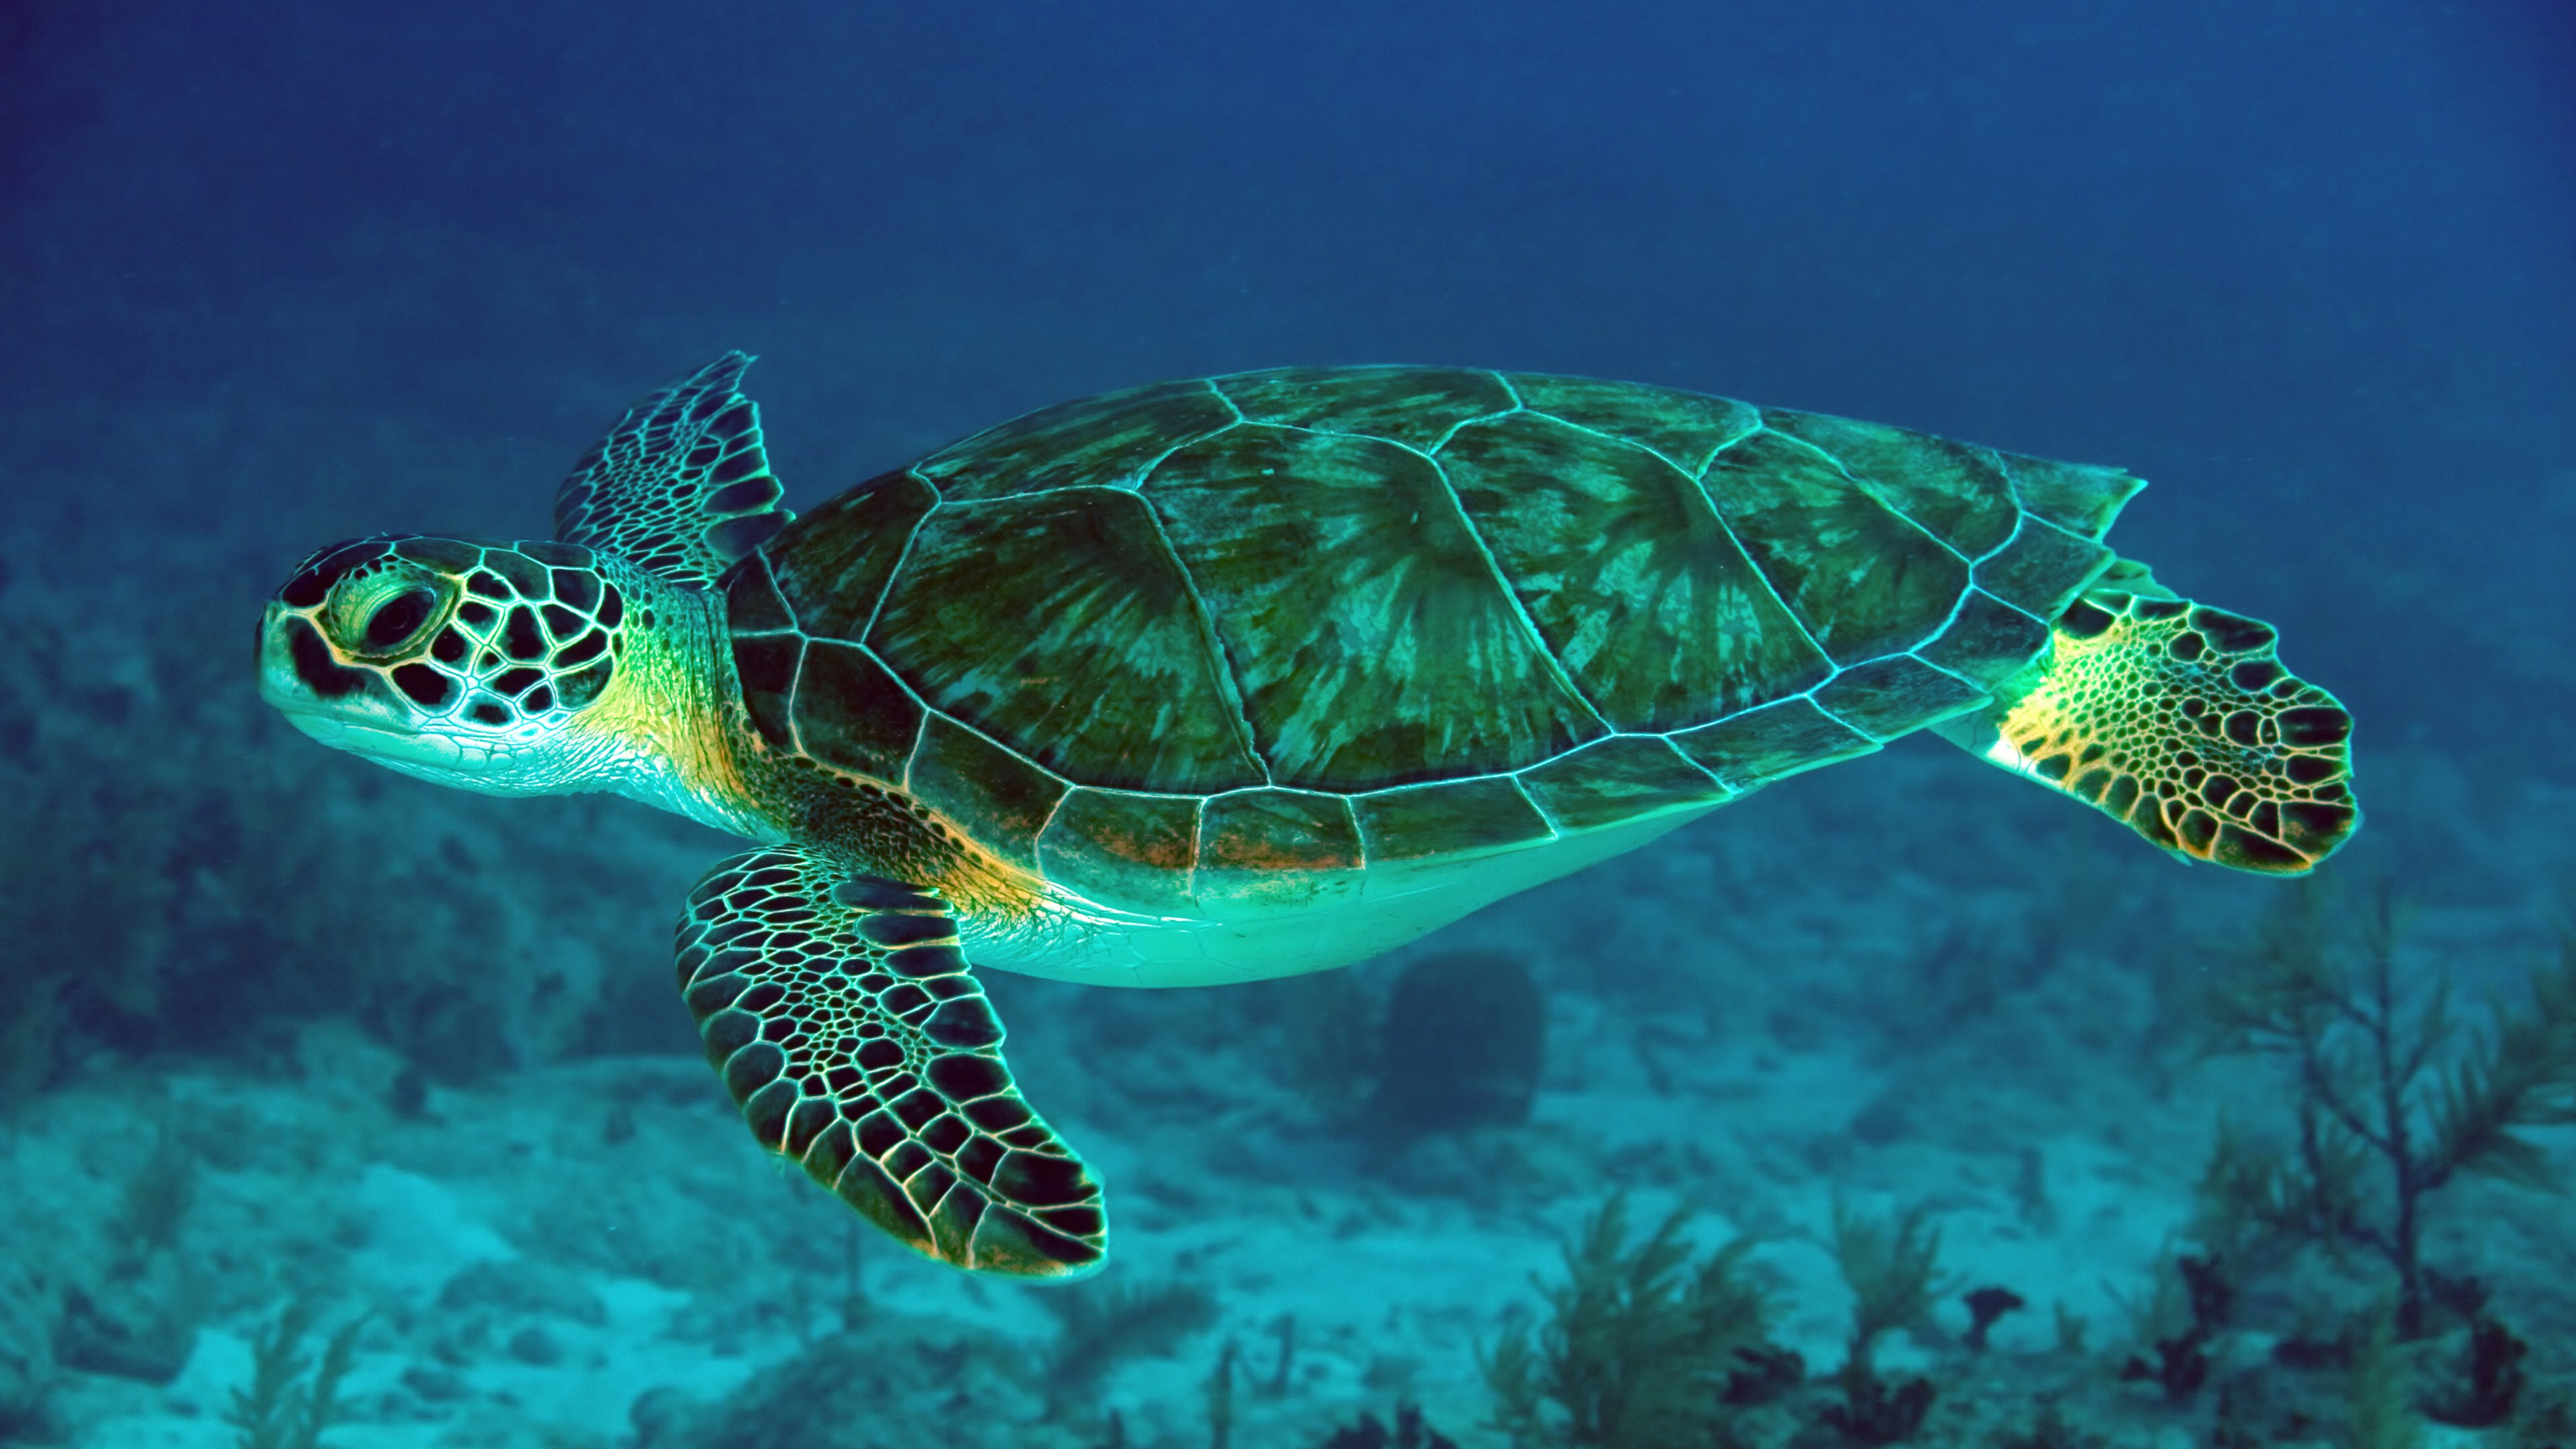 9 Sea Turtle Hd Wallpapers Background Images Wallpaper Abyss